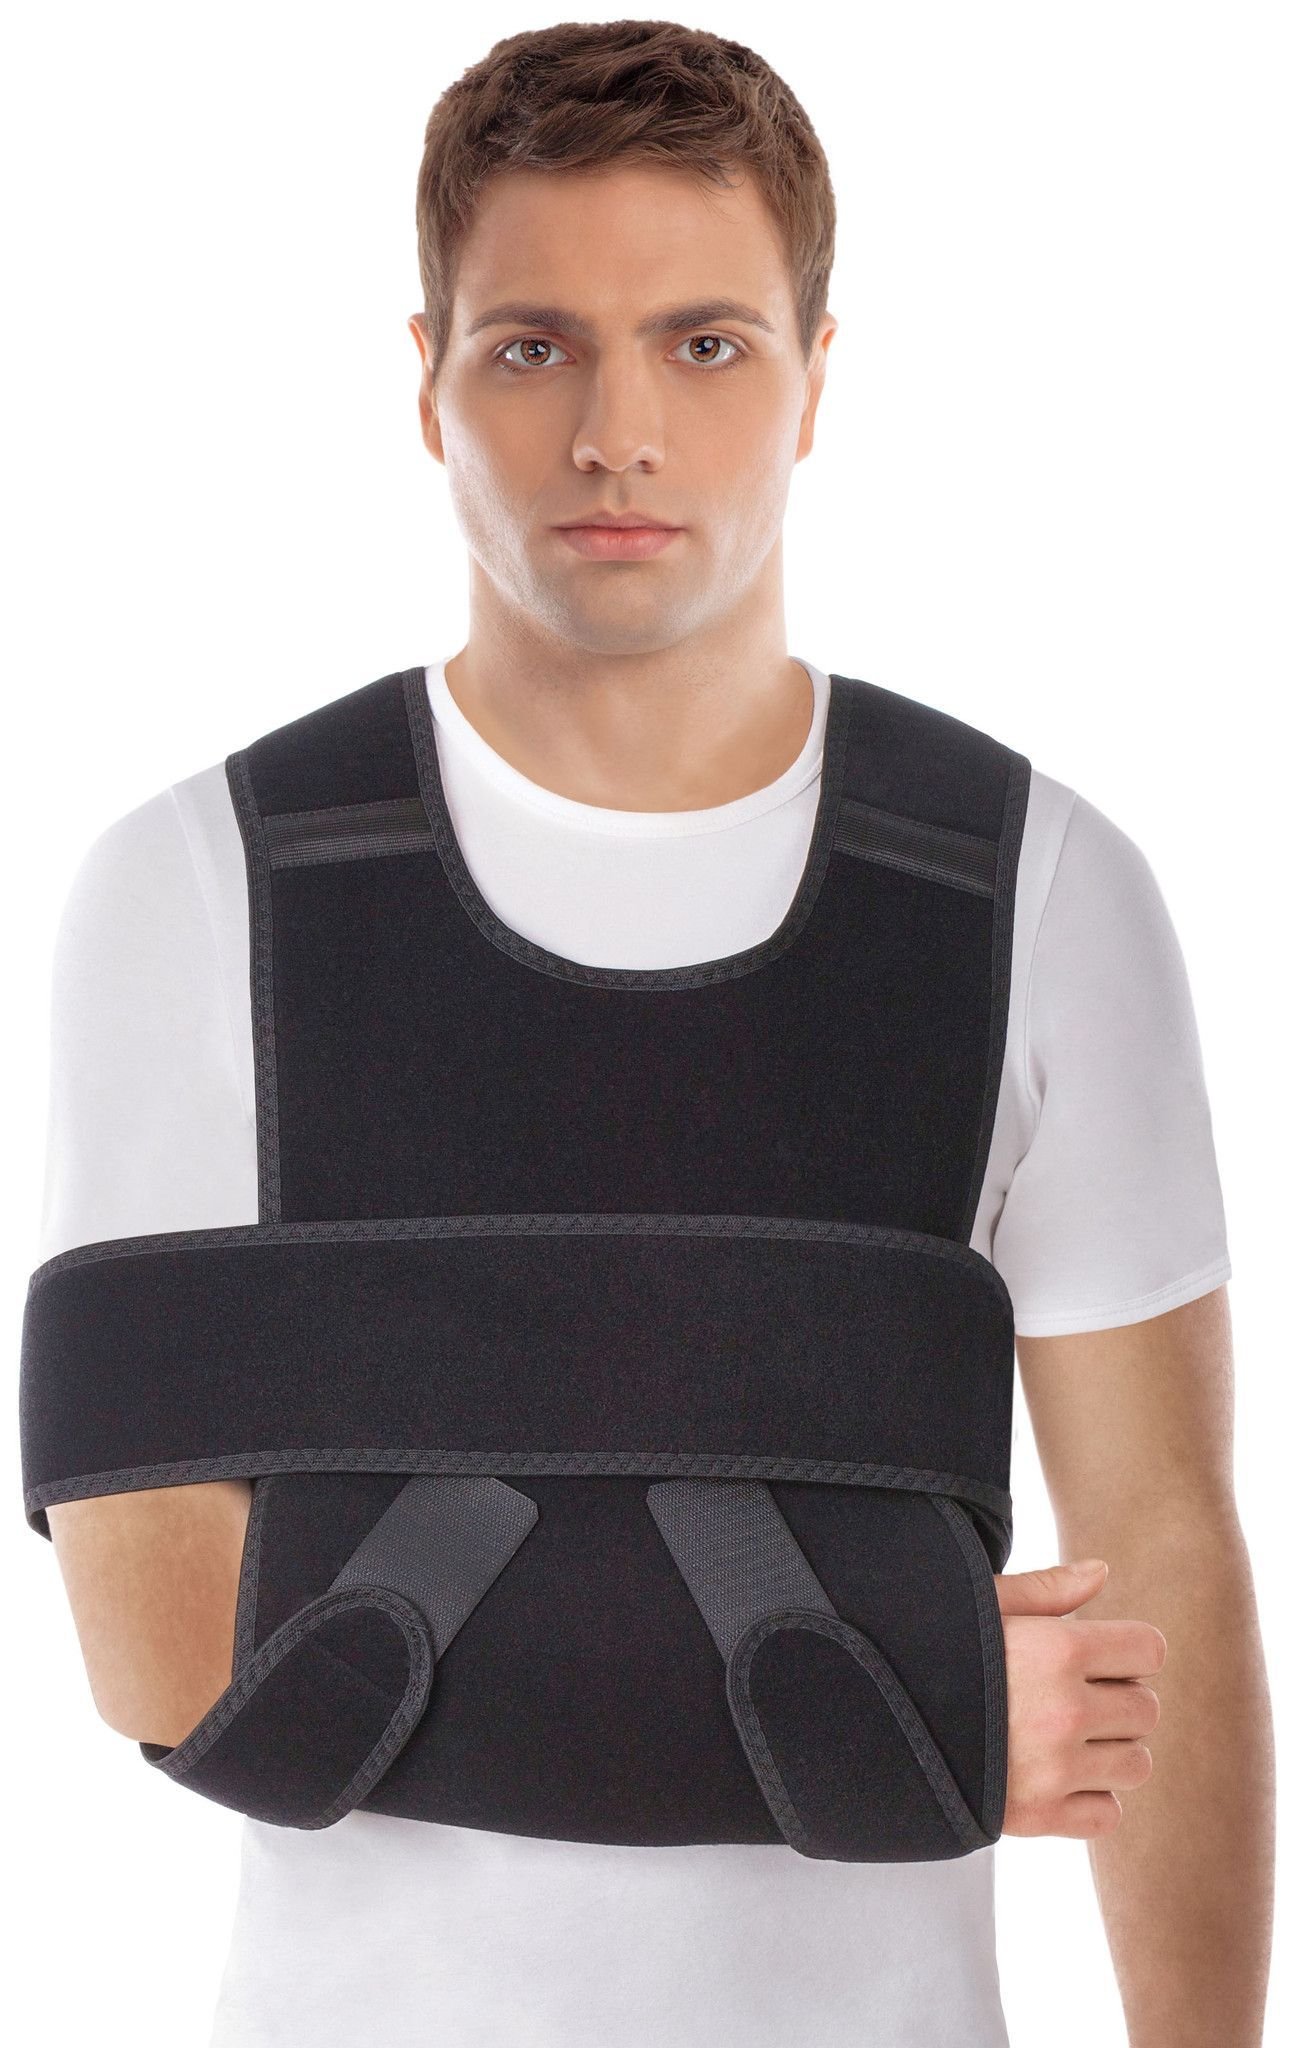 Arm & Shoulder Immobilizer Brace Arm sling, Shoulder